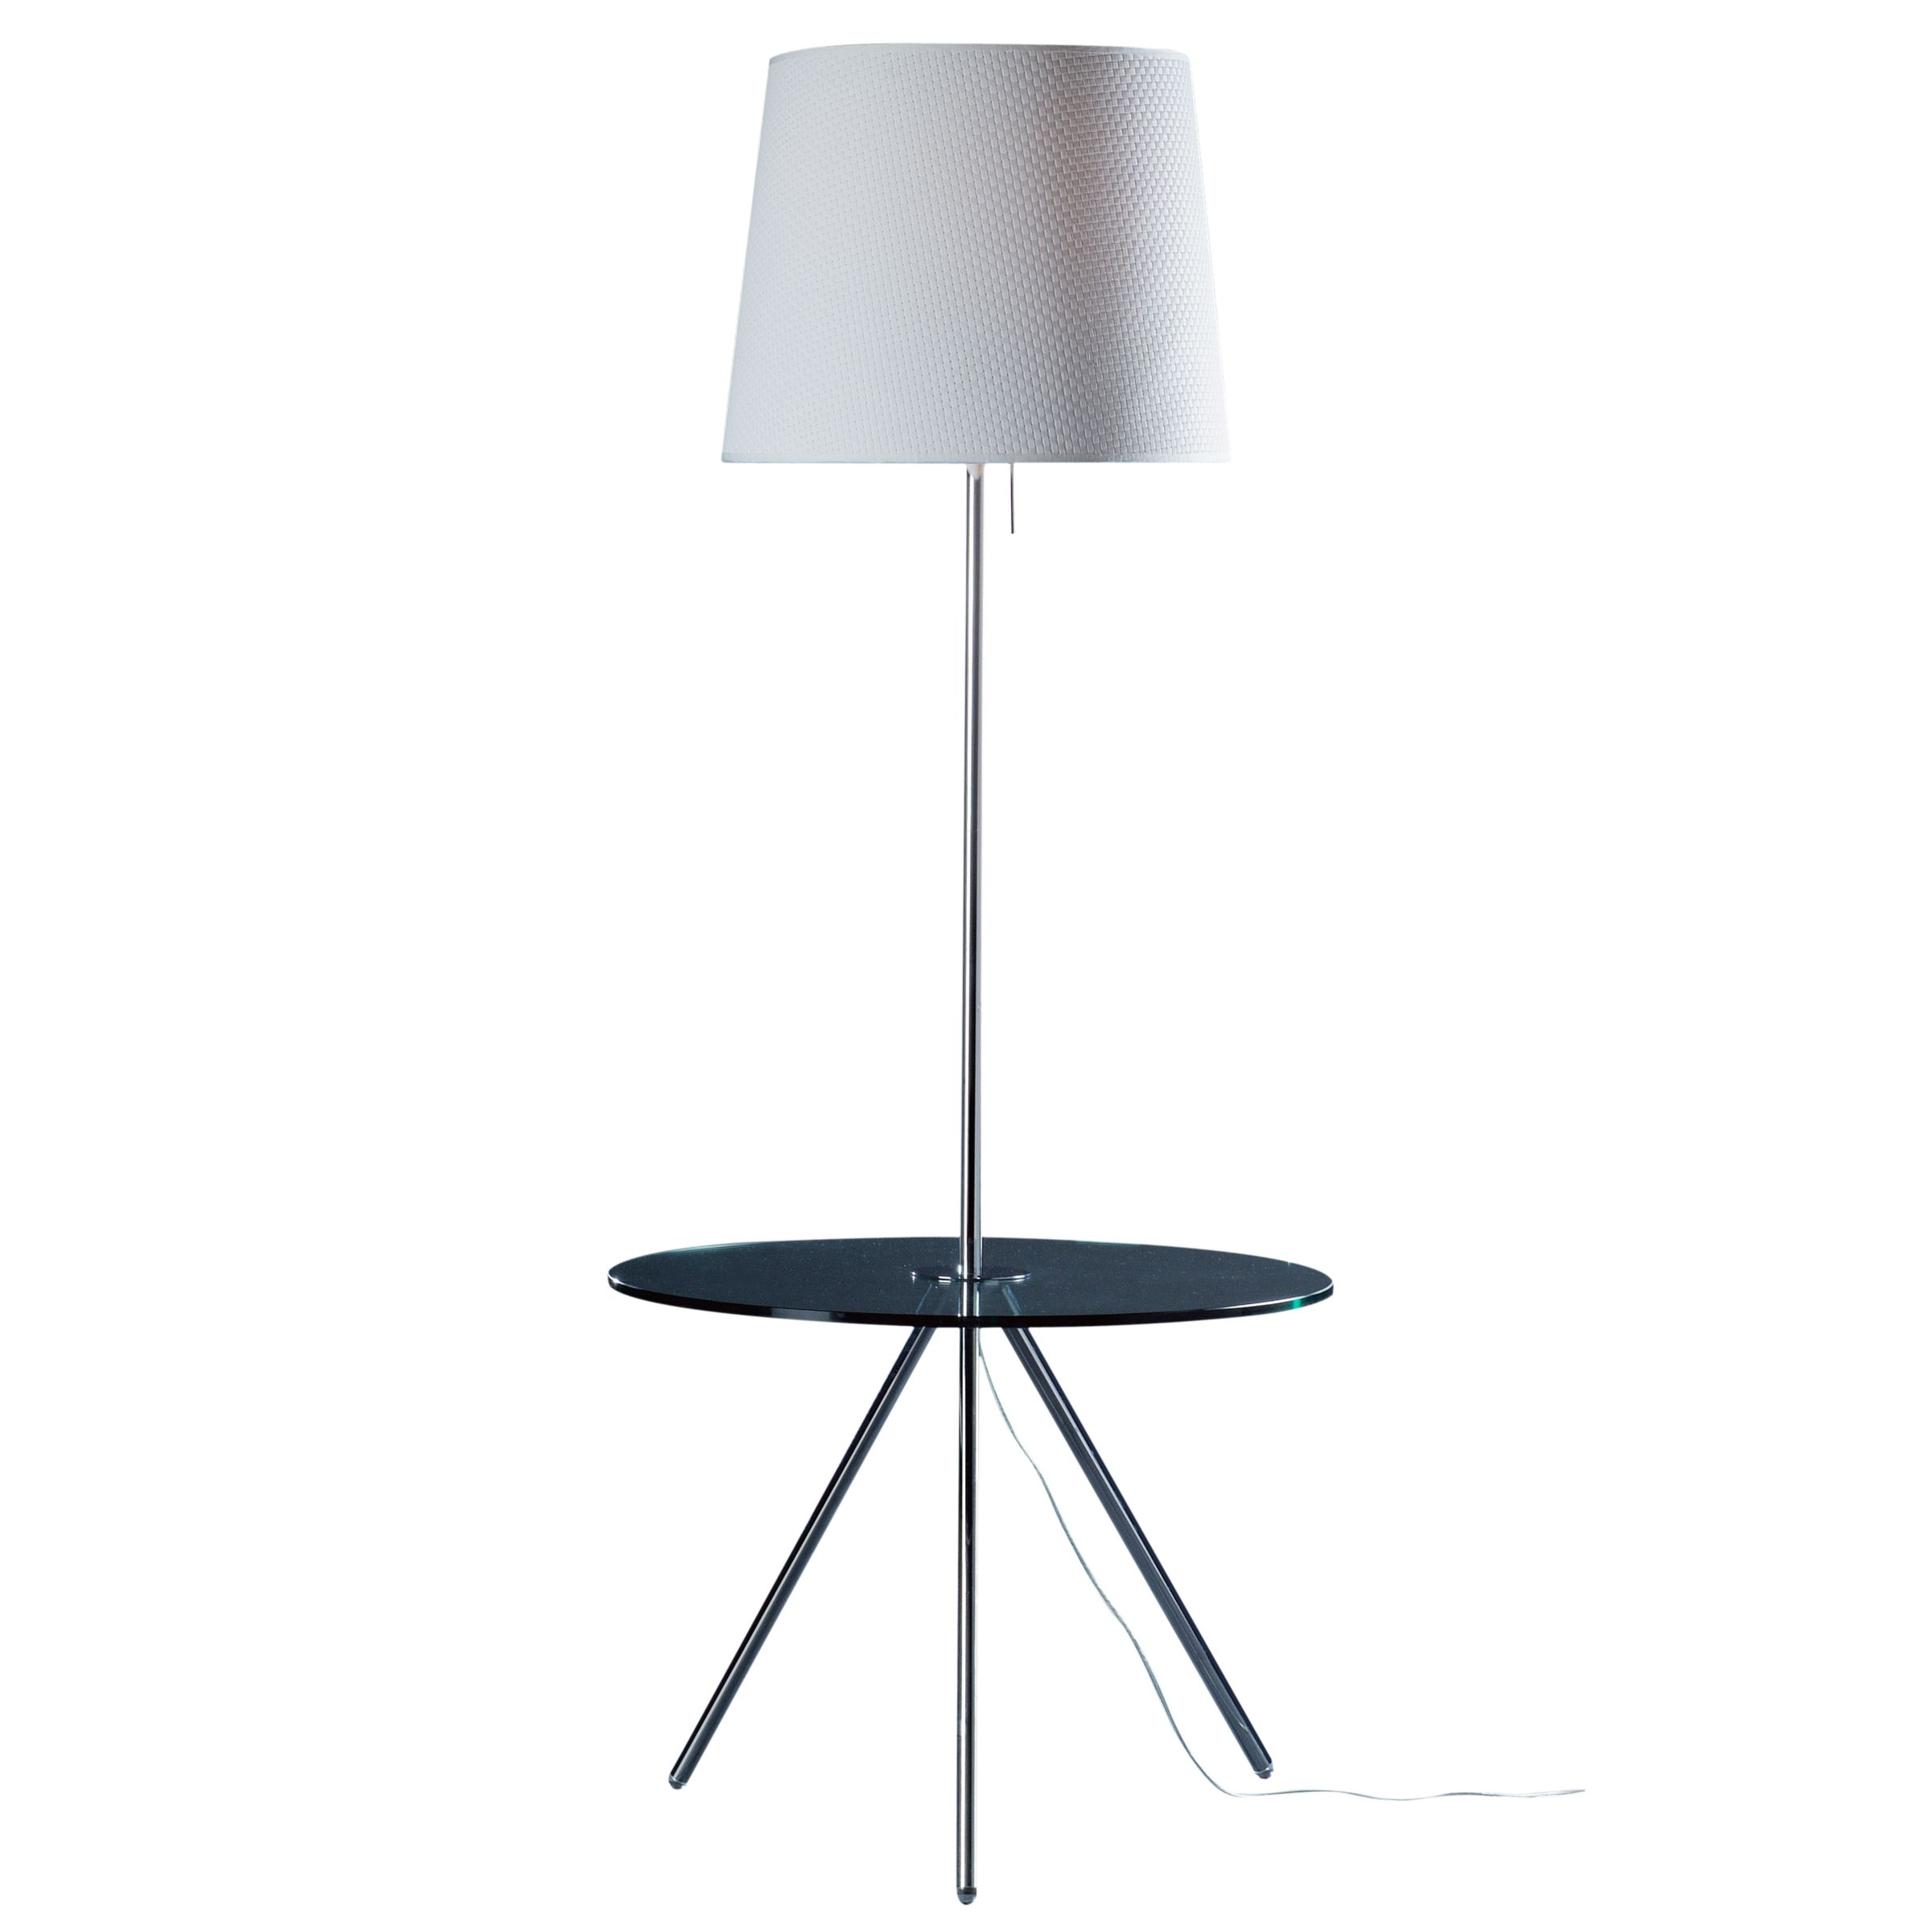 John lewis joshua table floor lamp review compare for Table lamp shades john lewis